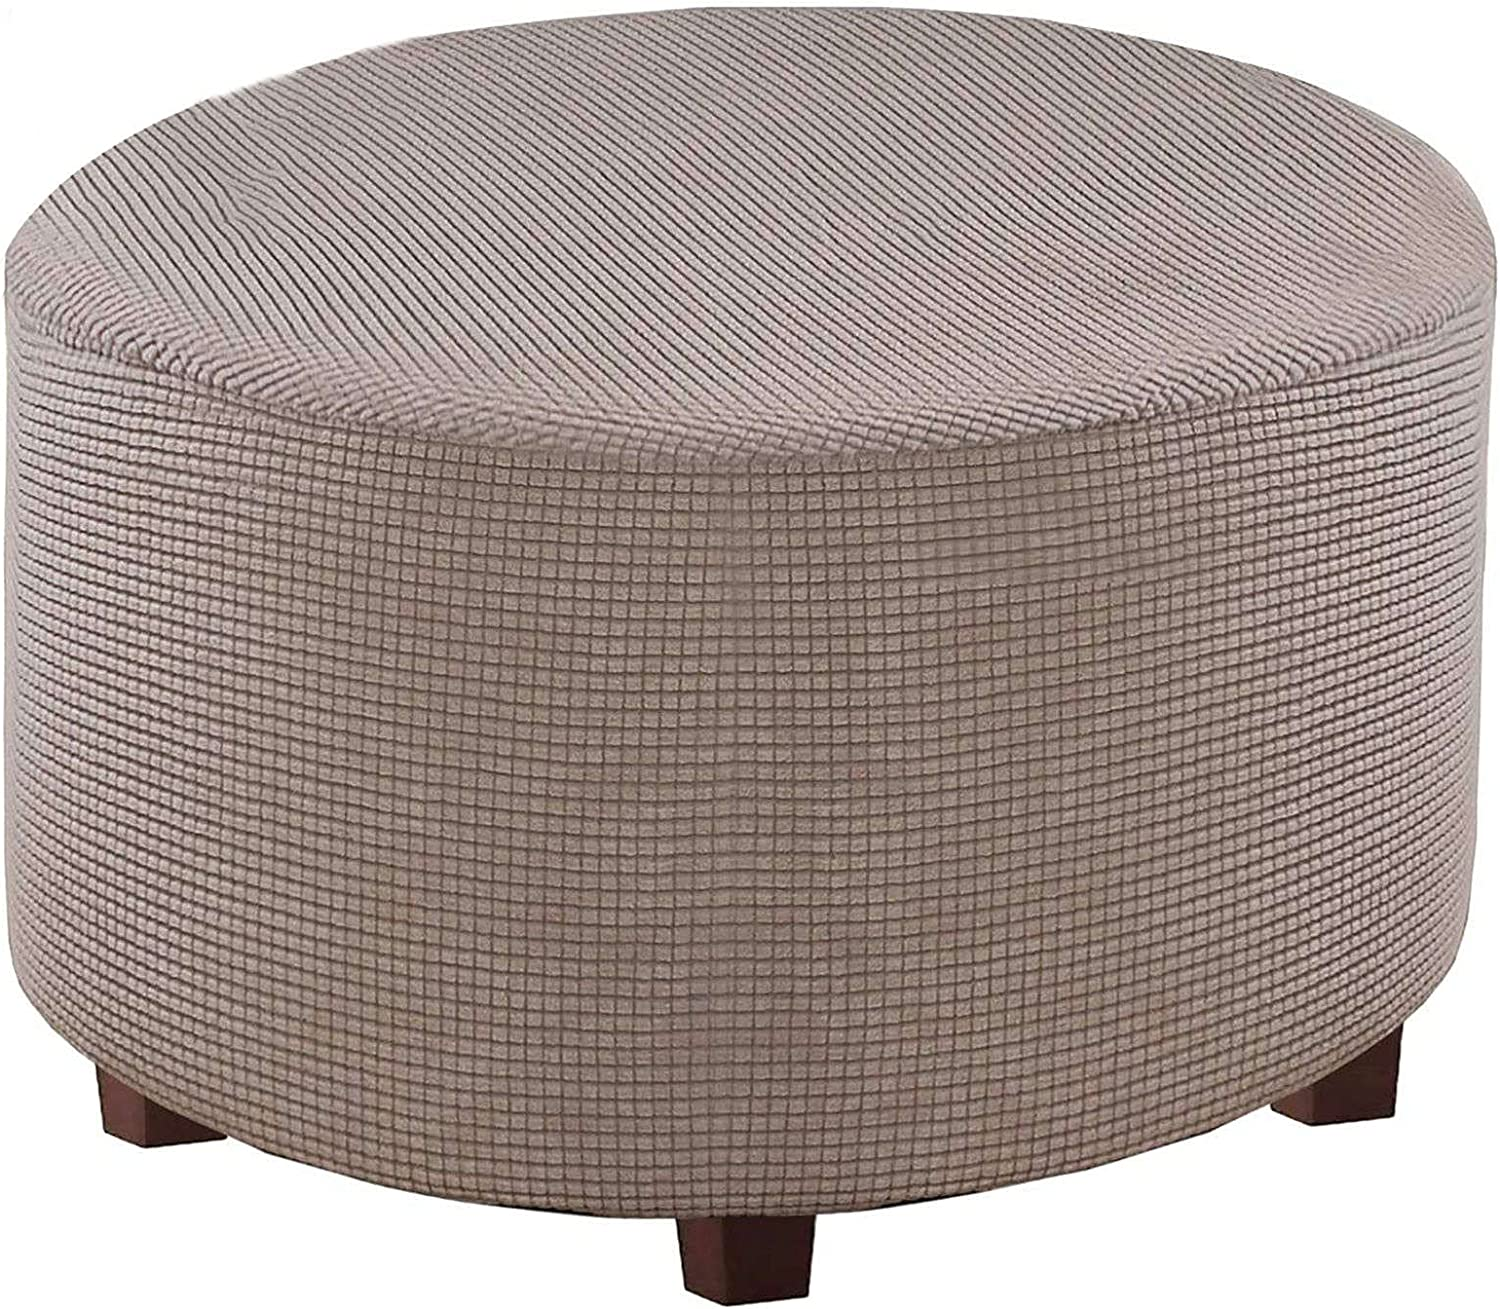 Round Many popular brands Ottoman We OFFer at cheap prices Slipcovers Jacquard Protector wi Stretch Footstool